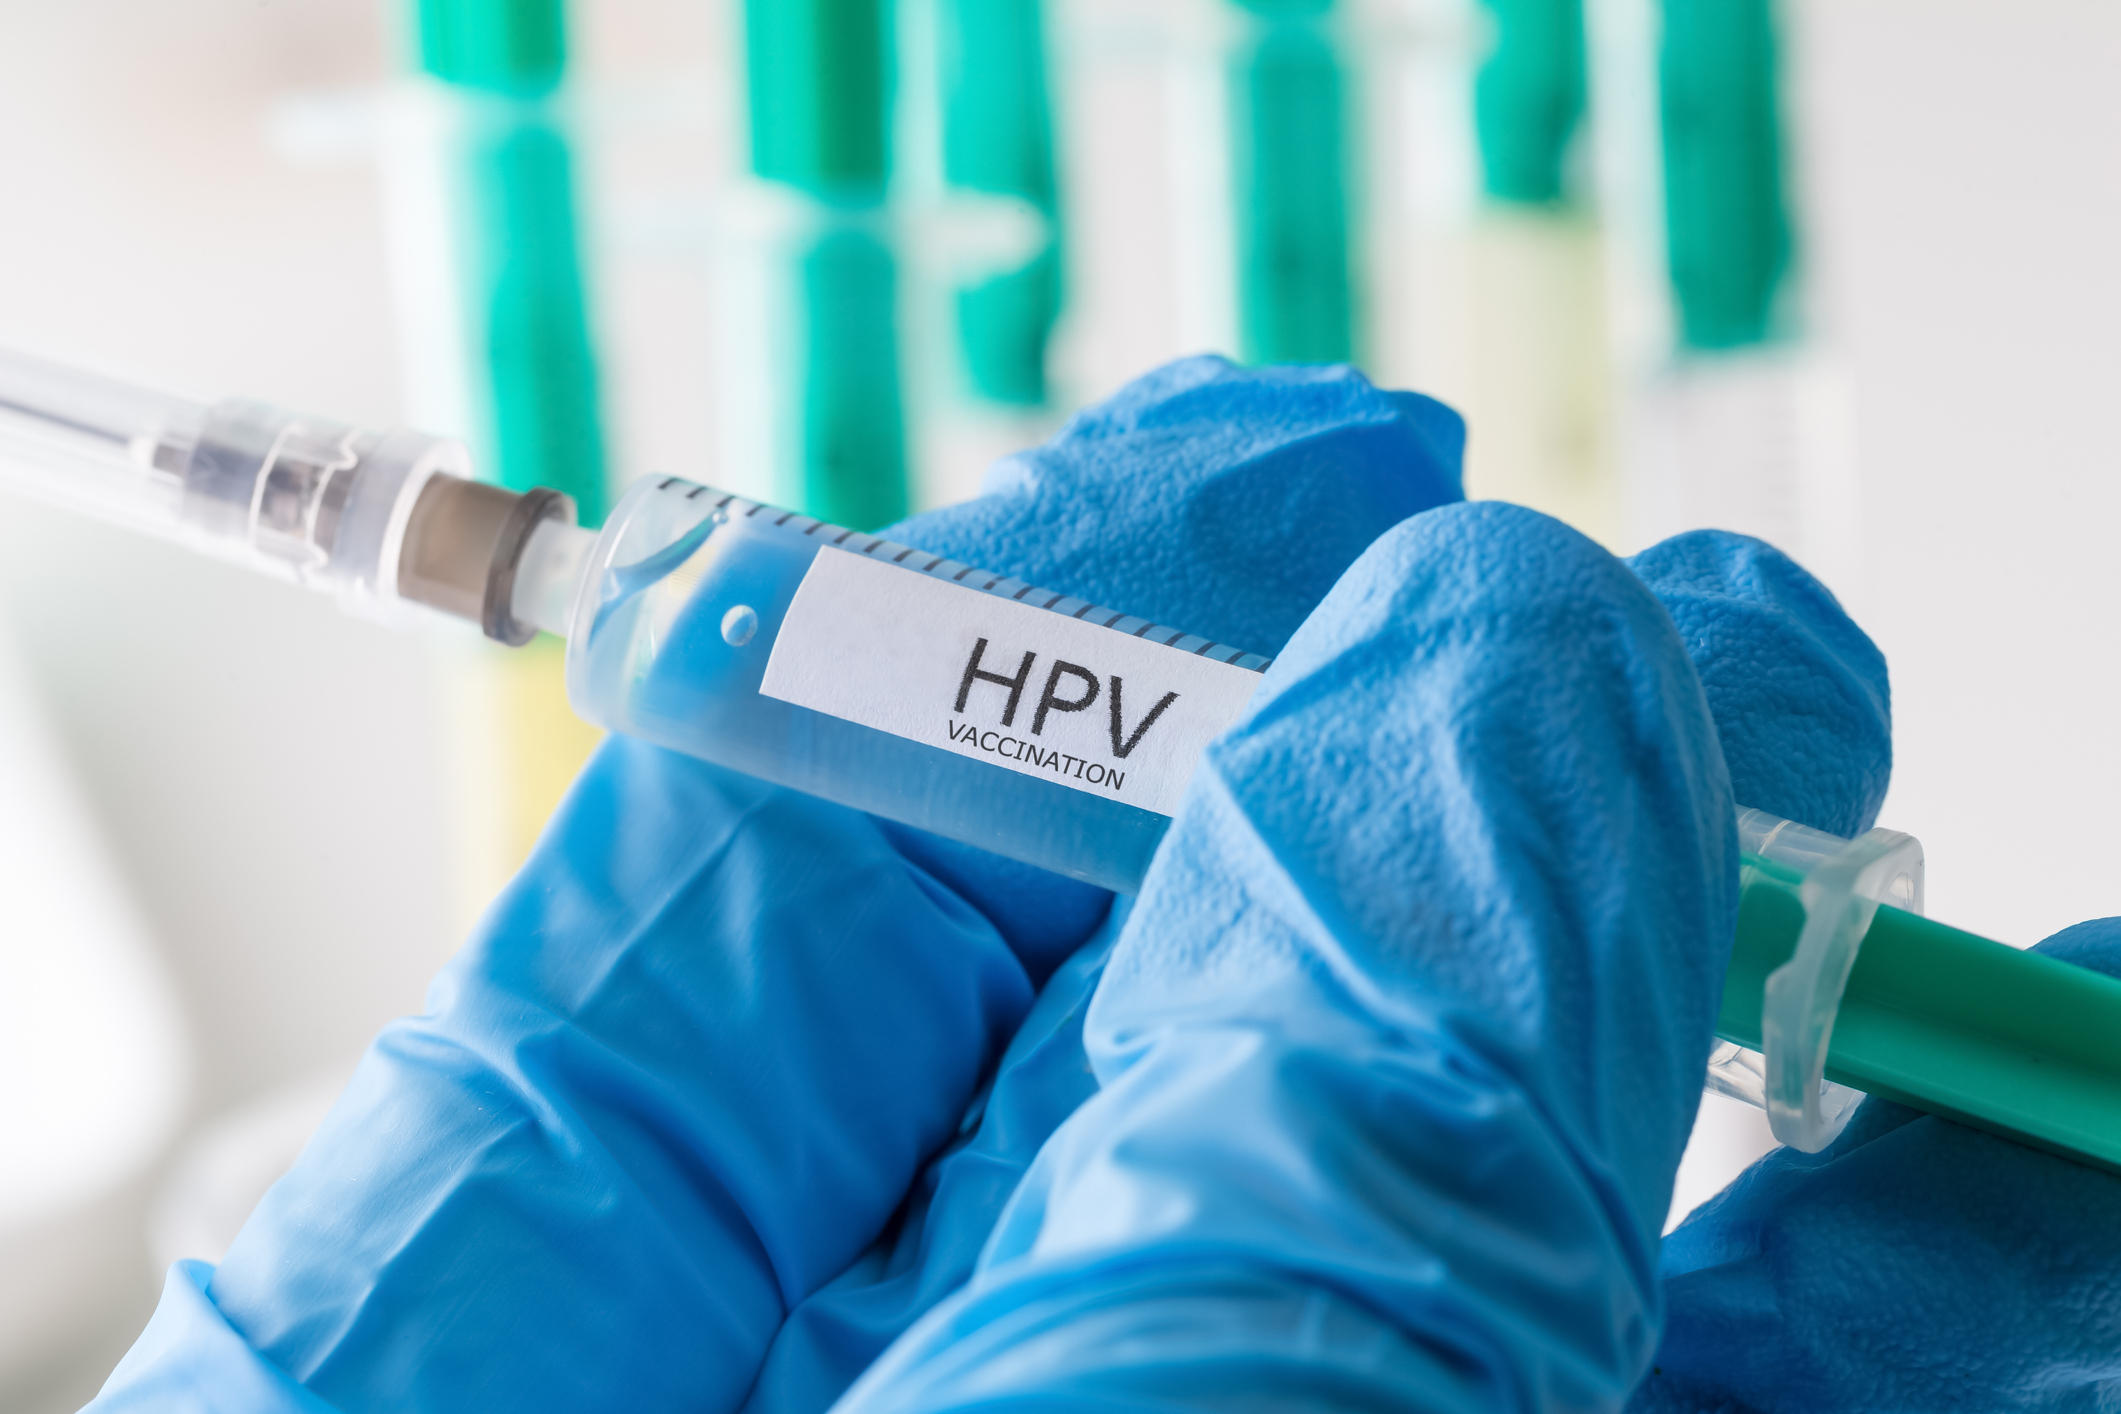 Gardasil Vaccine Reduces Cancer Risk/HPV Rates -- So Why Aren't Kids